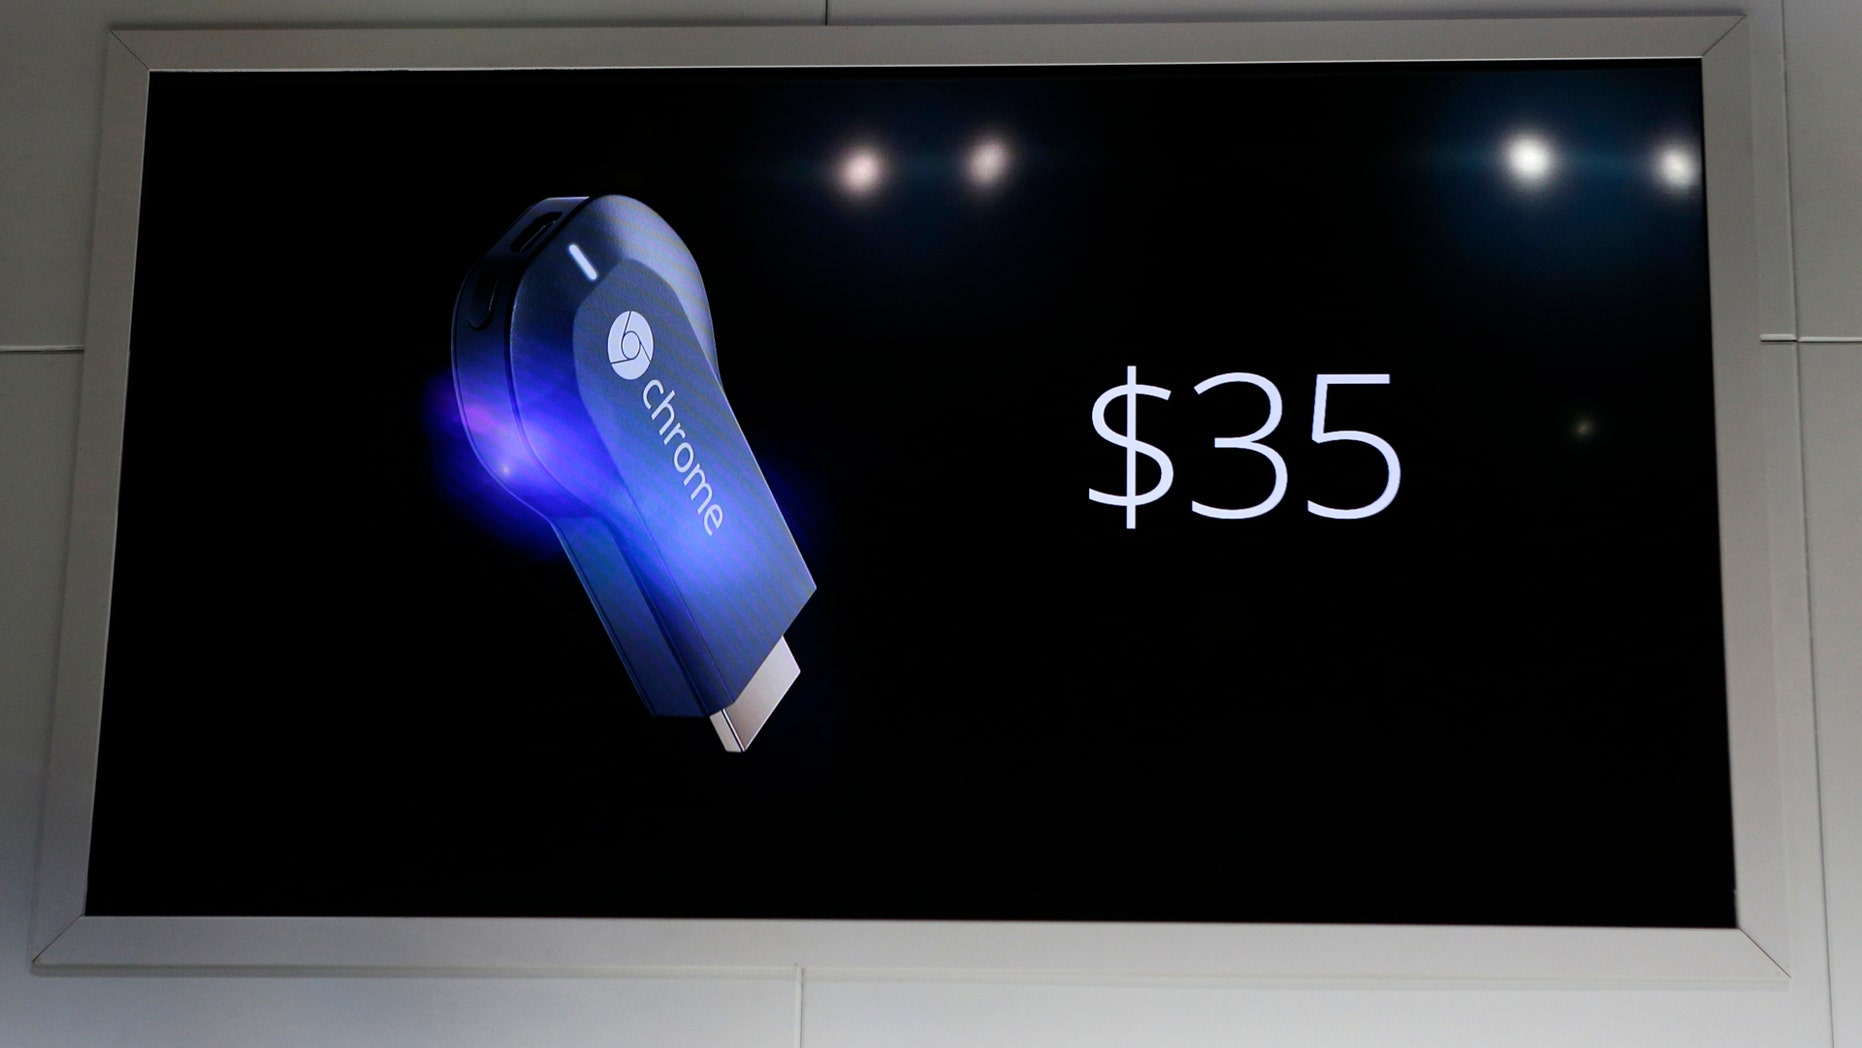 File photo: The new Google Chromecast dongle is pictured on an electronic screen as it is announced during a Google event at Dogpatch Studio in San Francisco, California, July 24, 2013. (REUTERS/Beck Diefenbach)